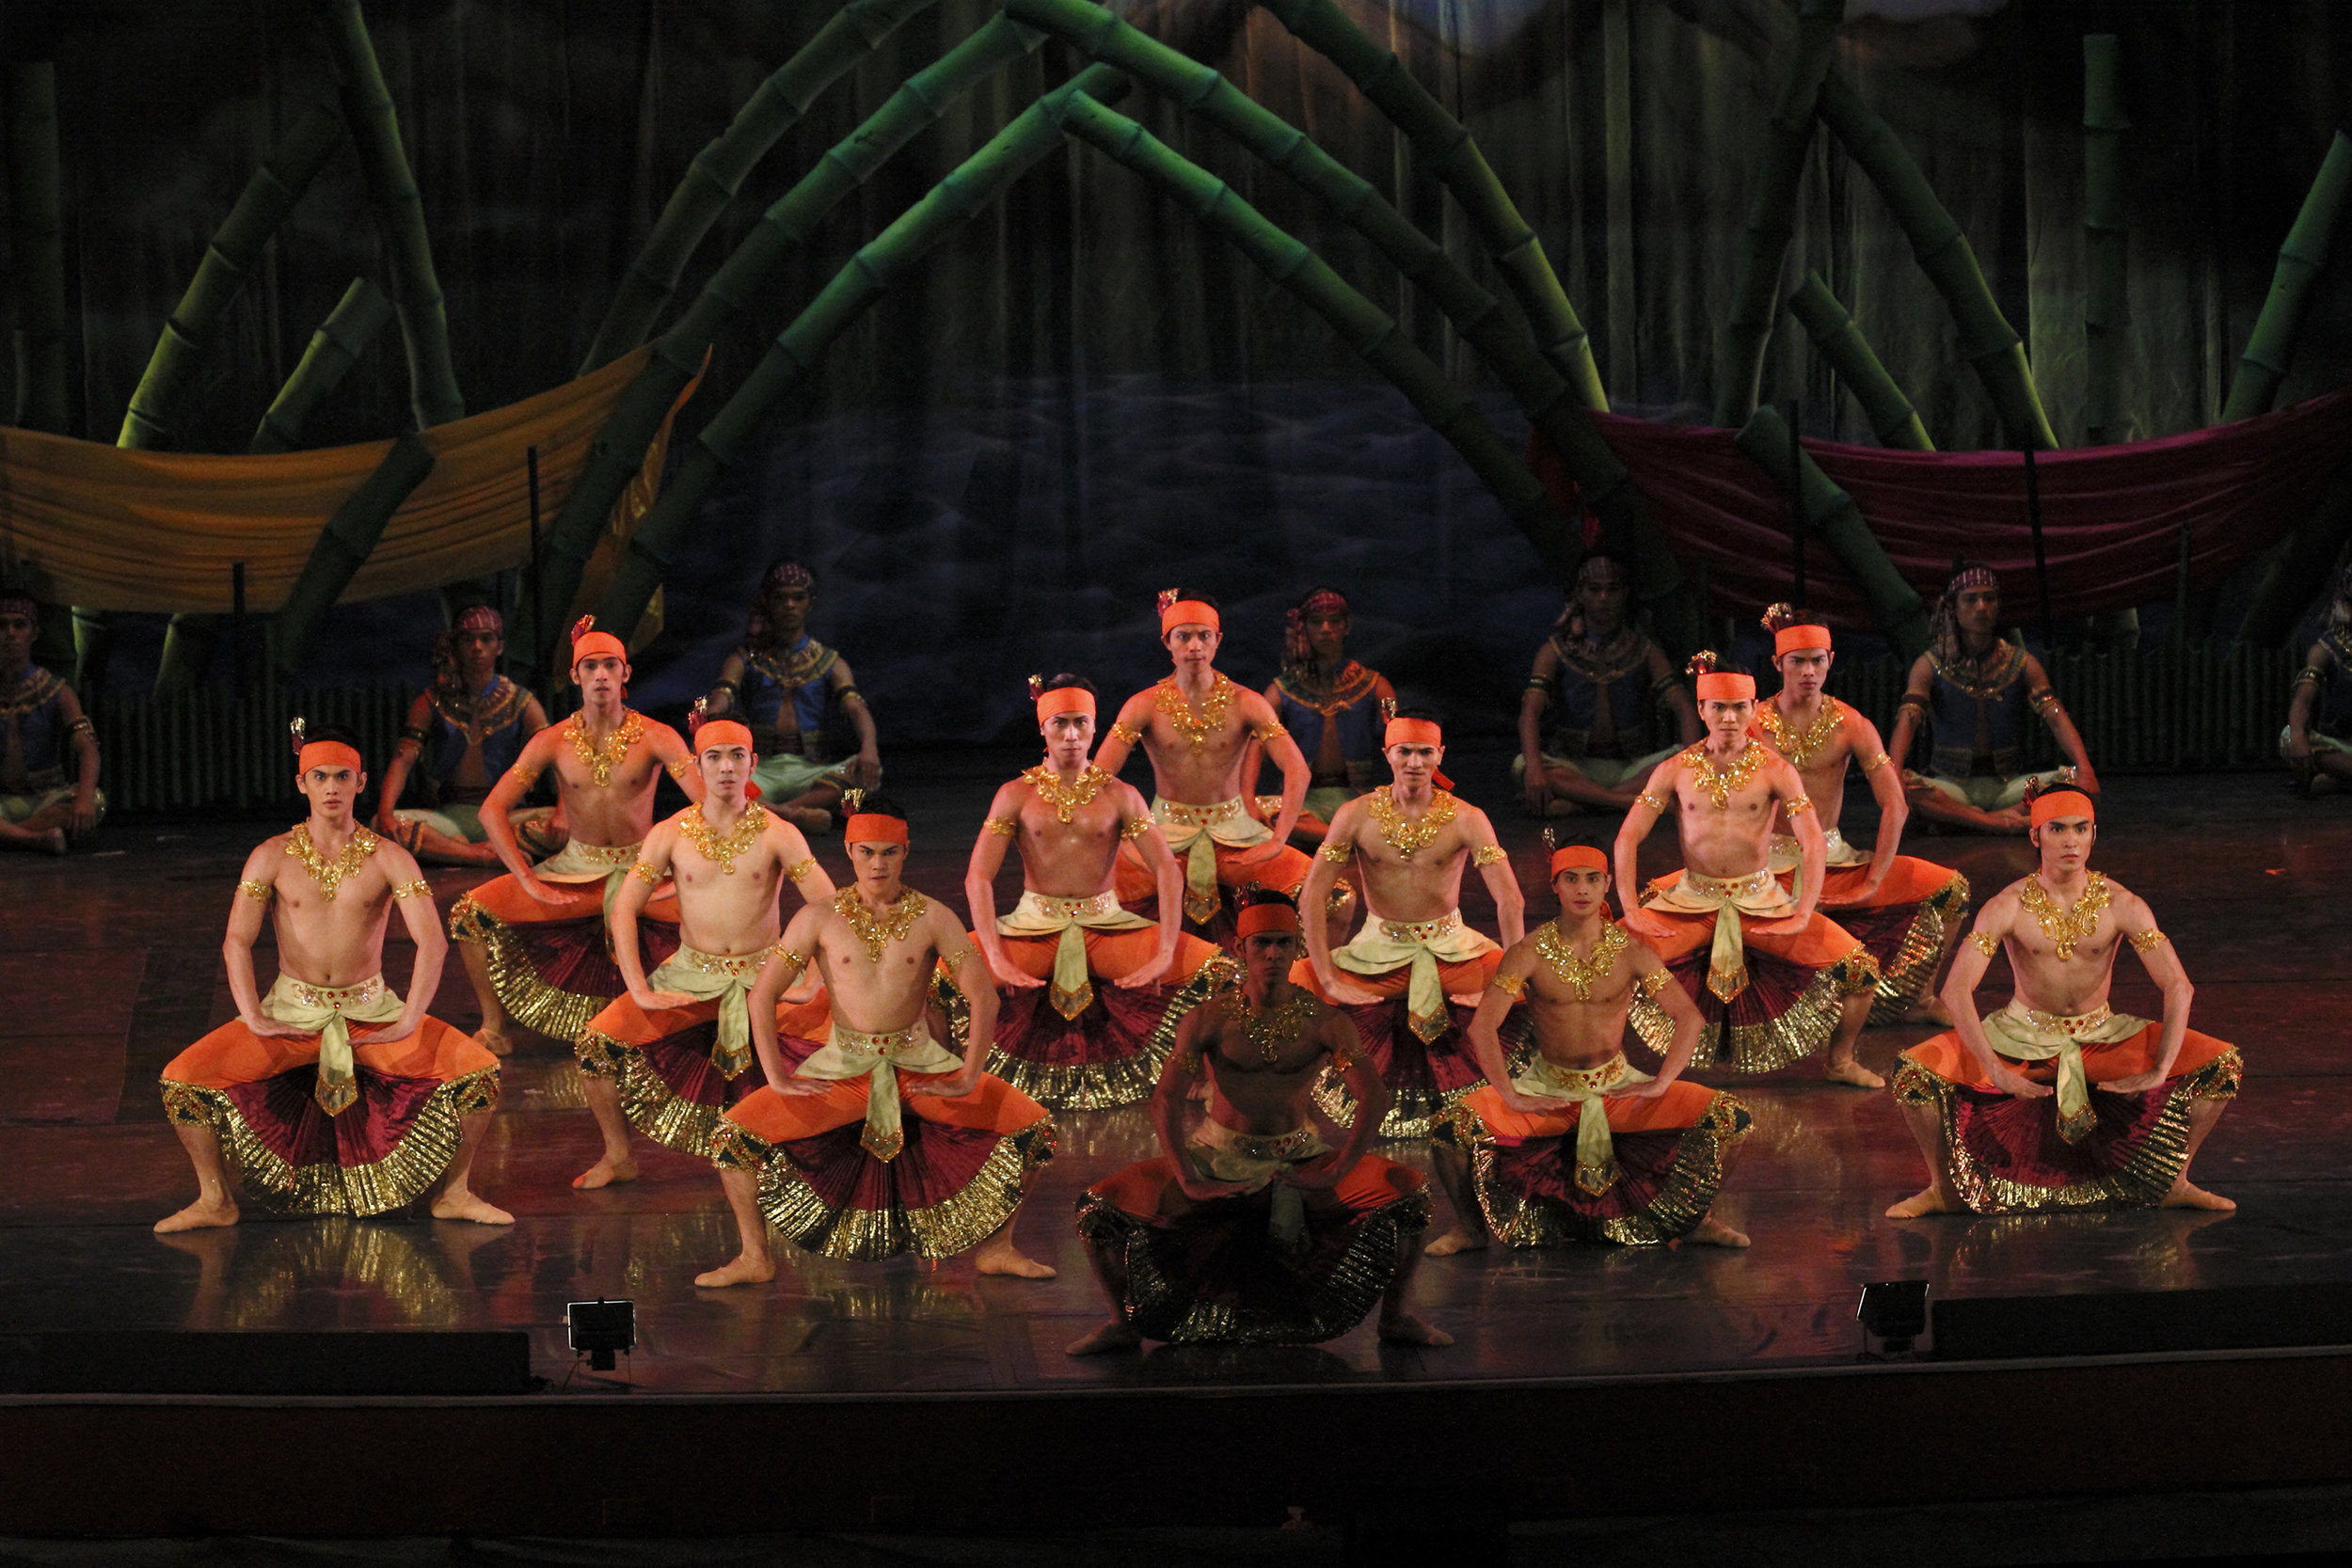 The production was inspired by the Filipino Muslim culture, fashion, music and dances.